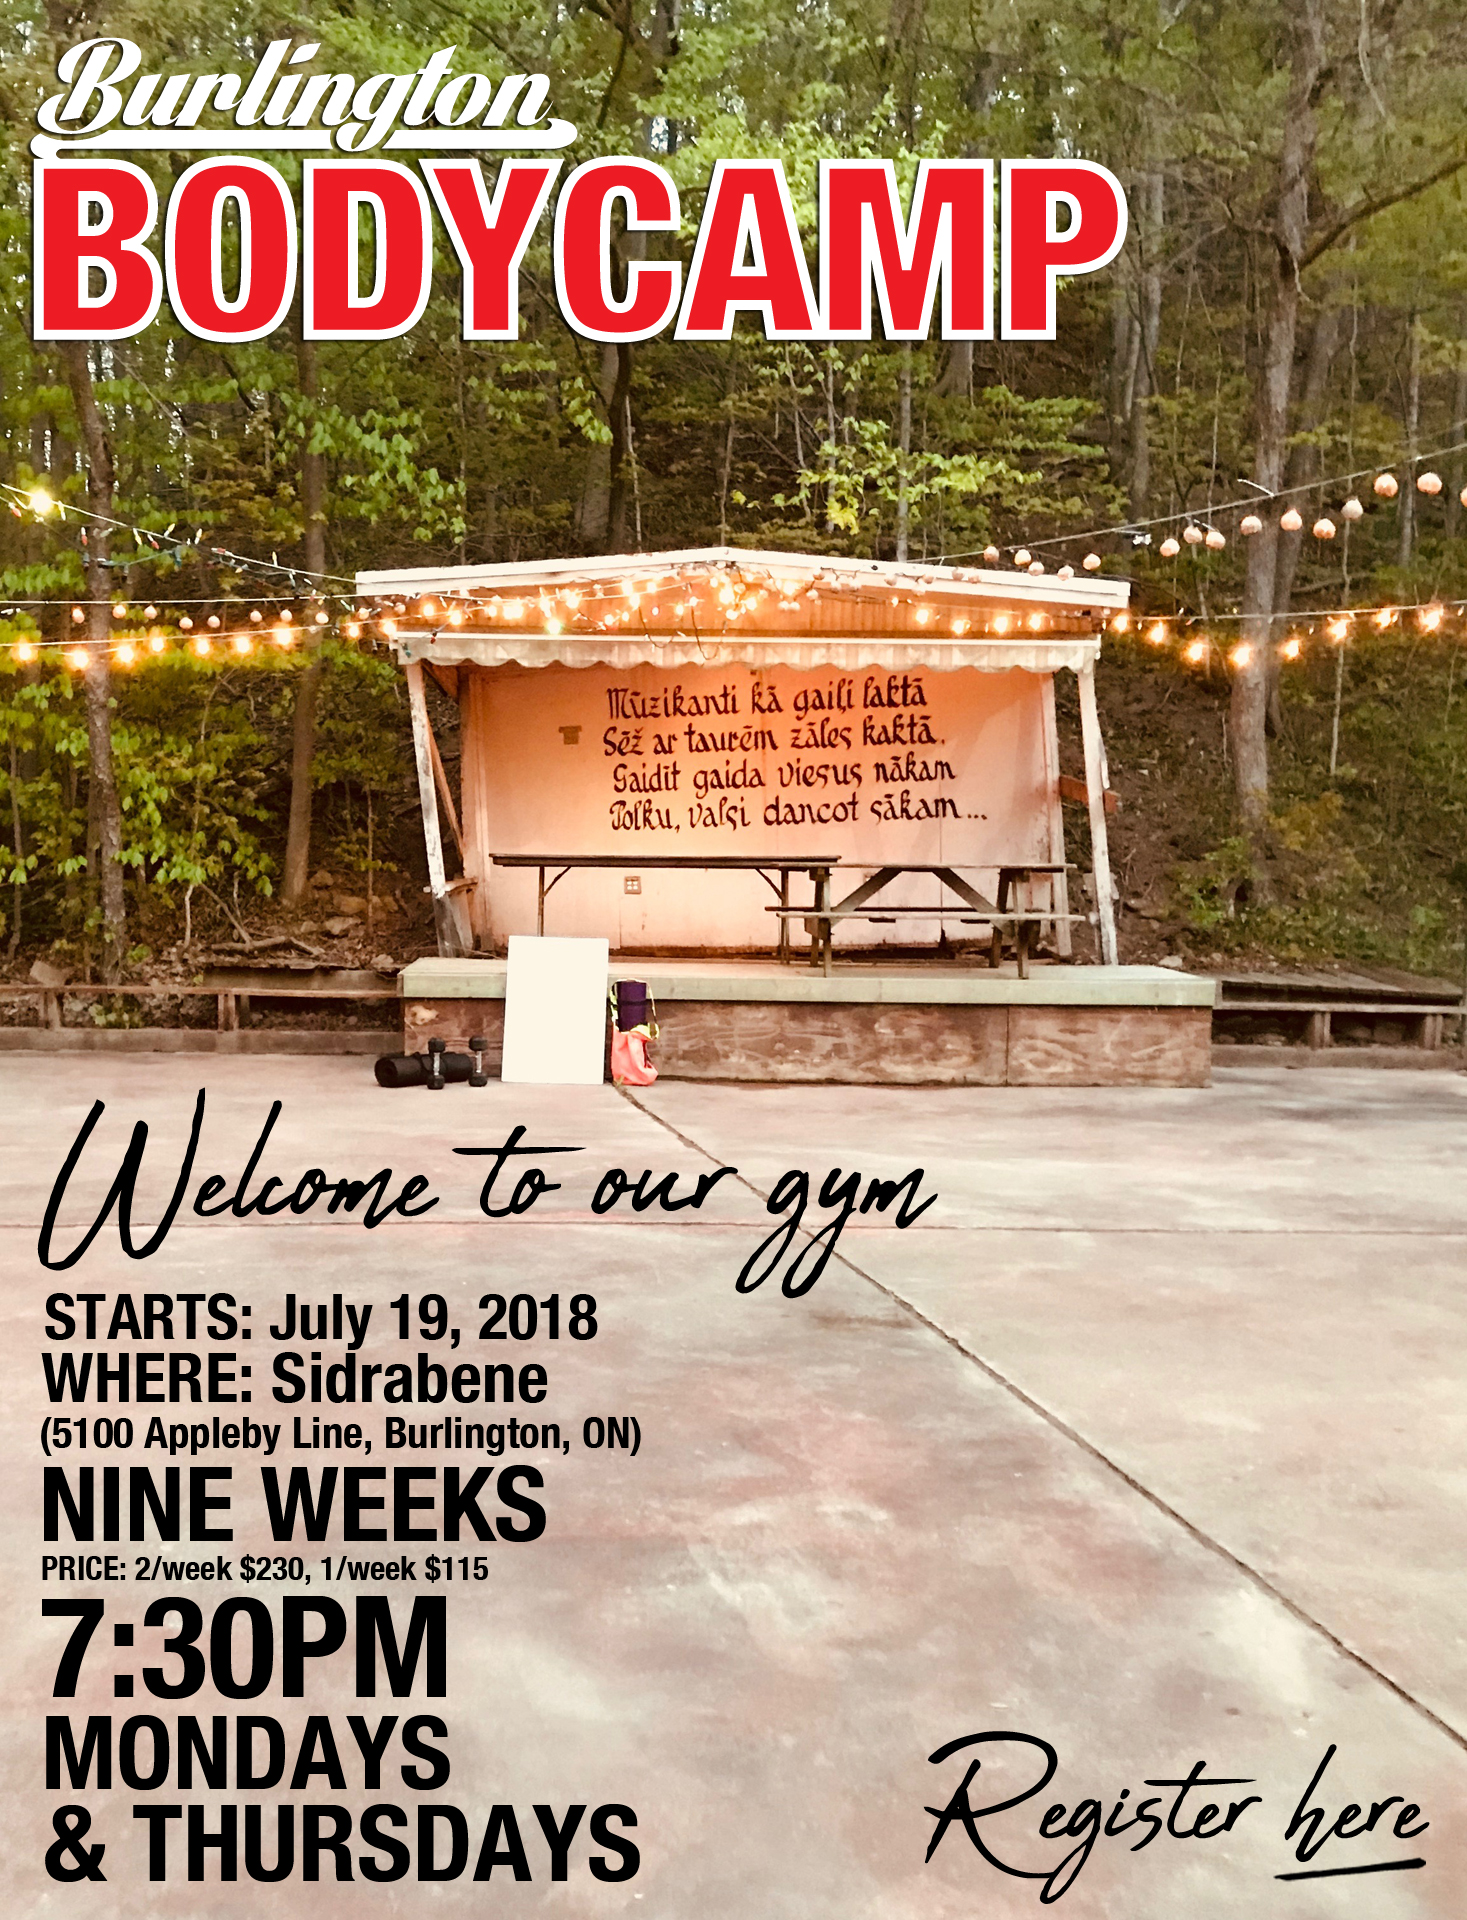 Next Burlington Body Camp Starts July 19th, 2018